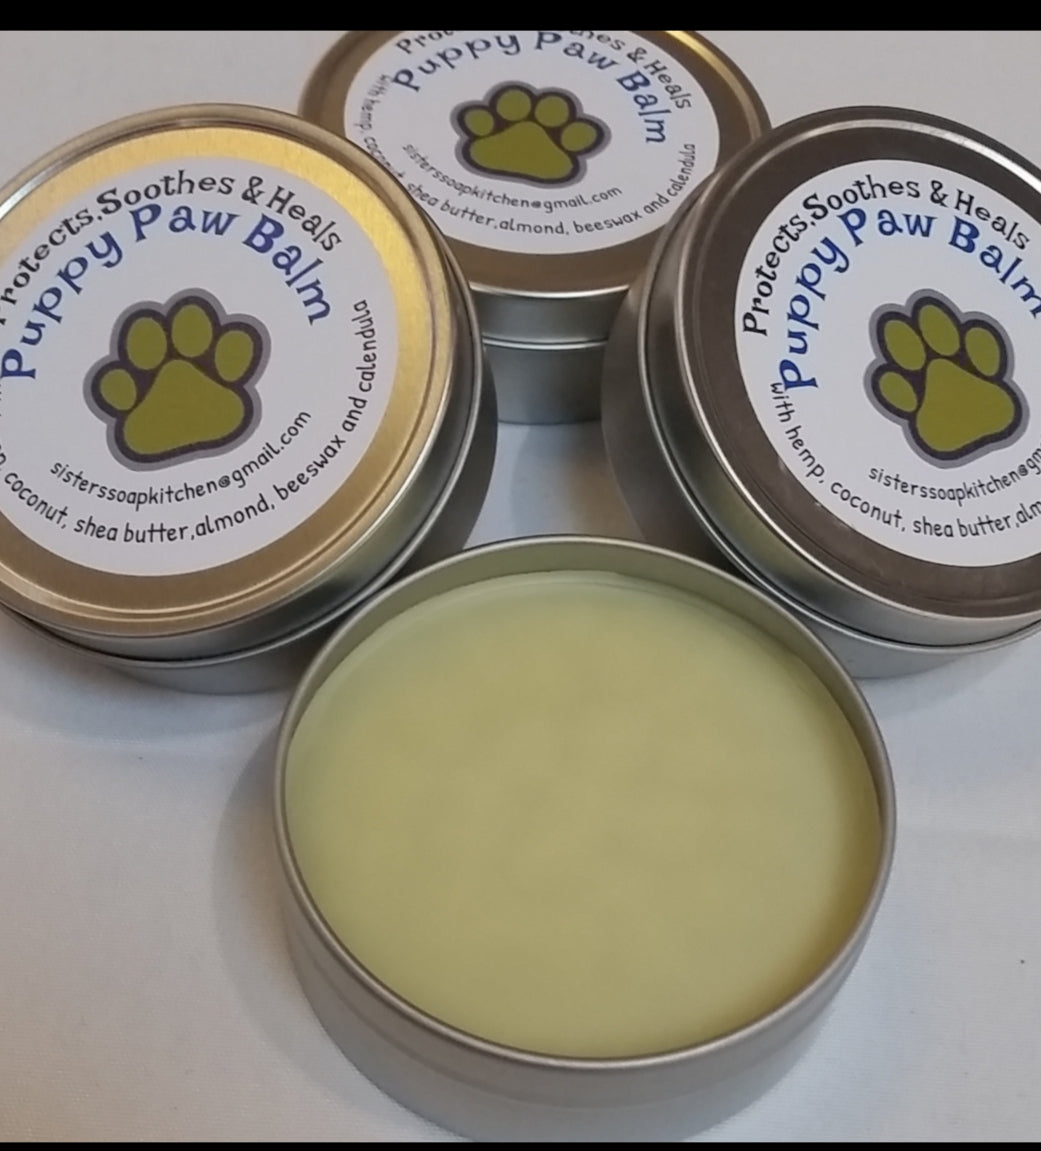 Puppy Paw Balm, 2 (4oz) tins for $15.00 - Sisters Soap Kitchen